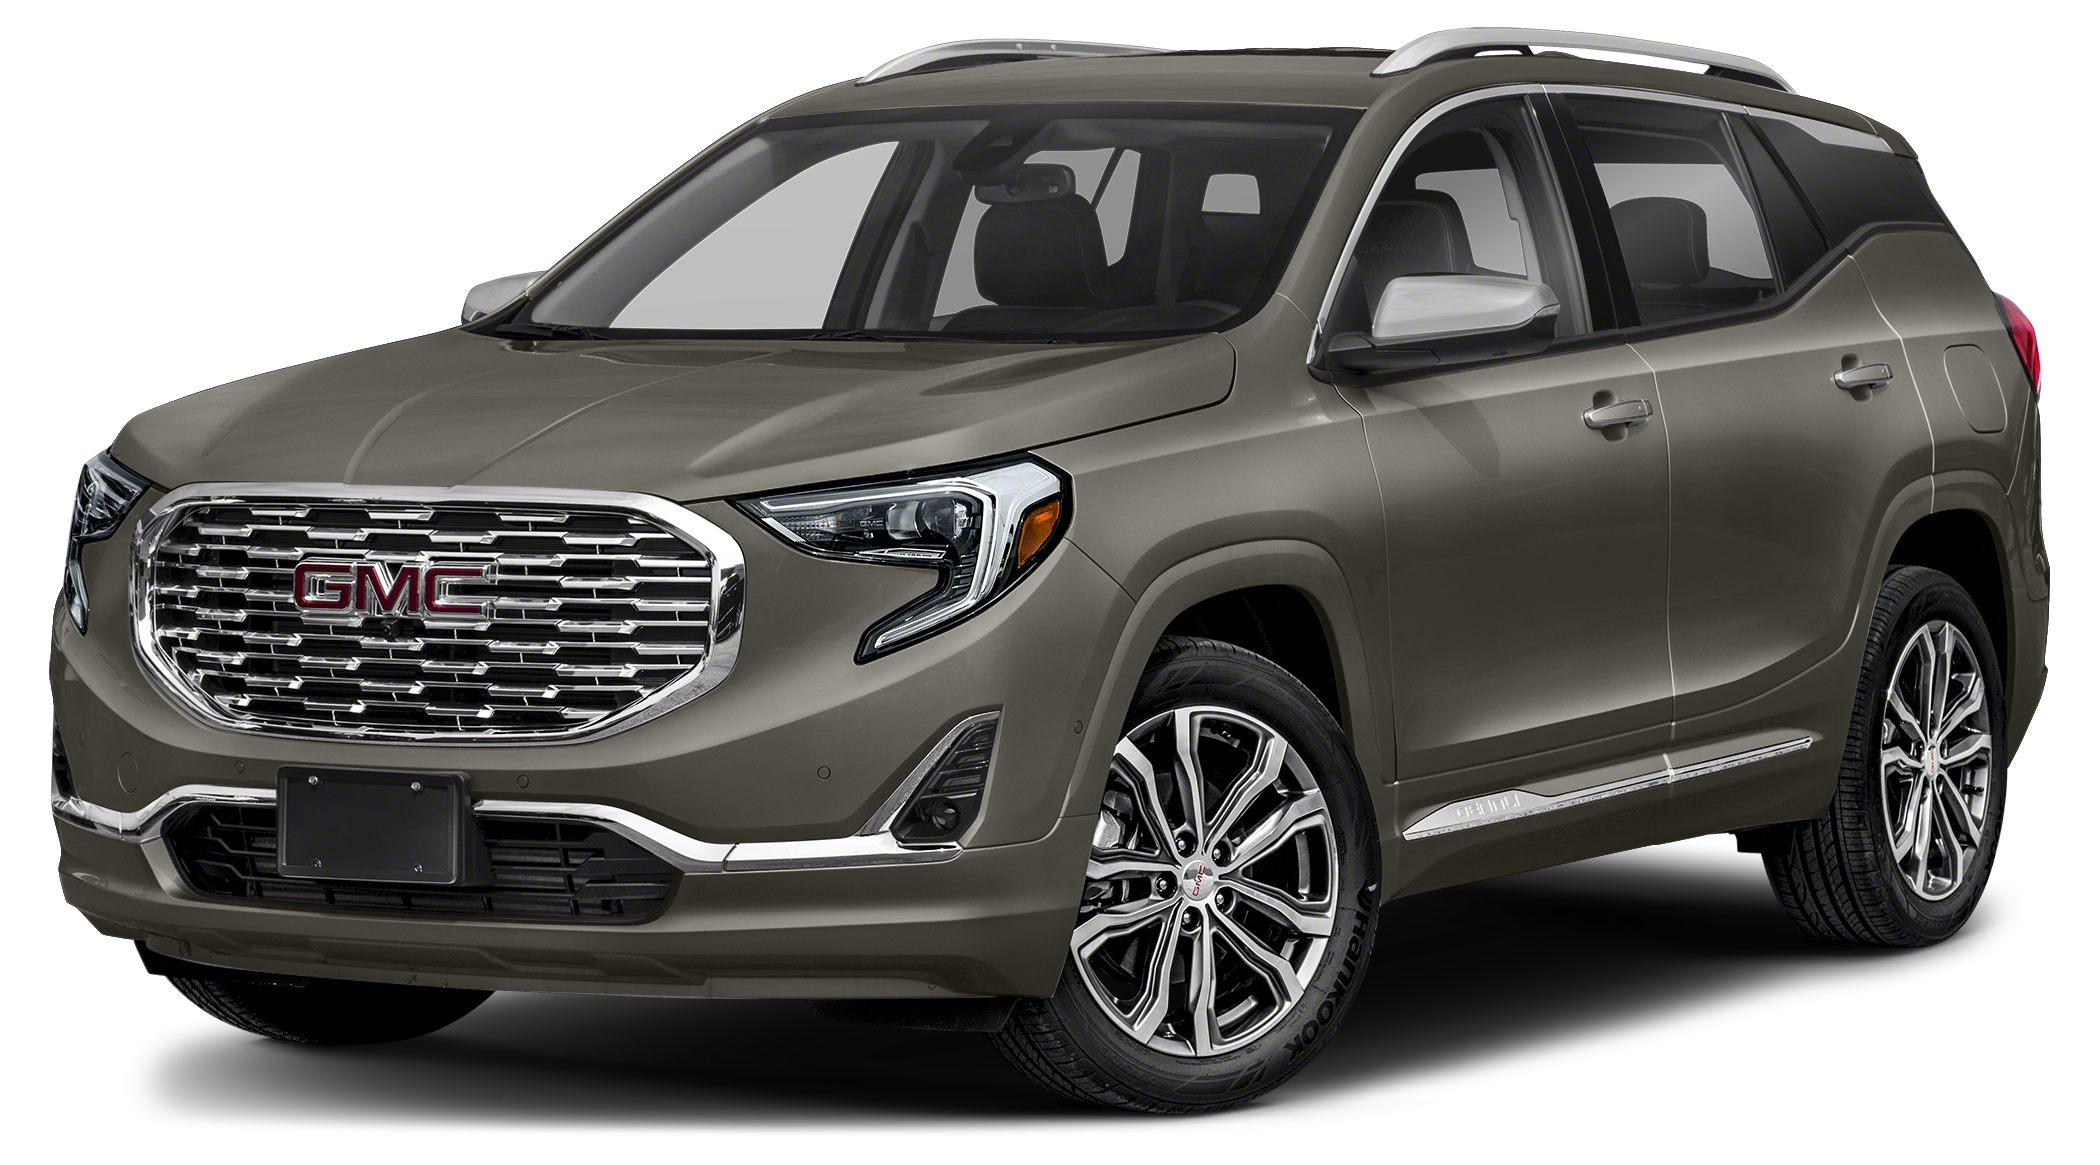 2018 GMC Terrain Denali This 2018 GMC Terrain Denali is a real winner with features like a backup